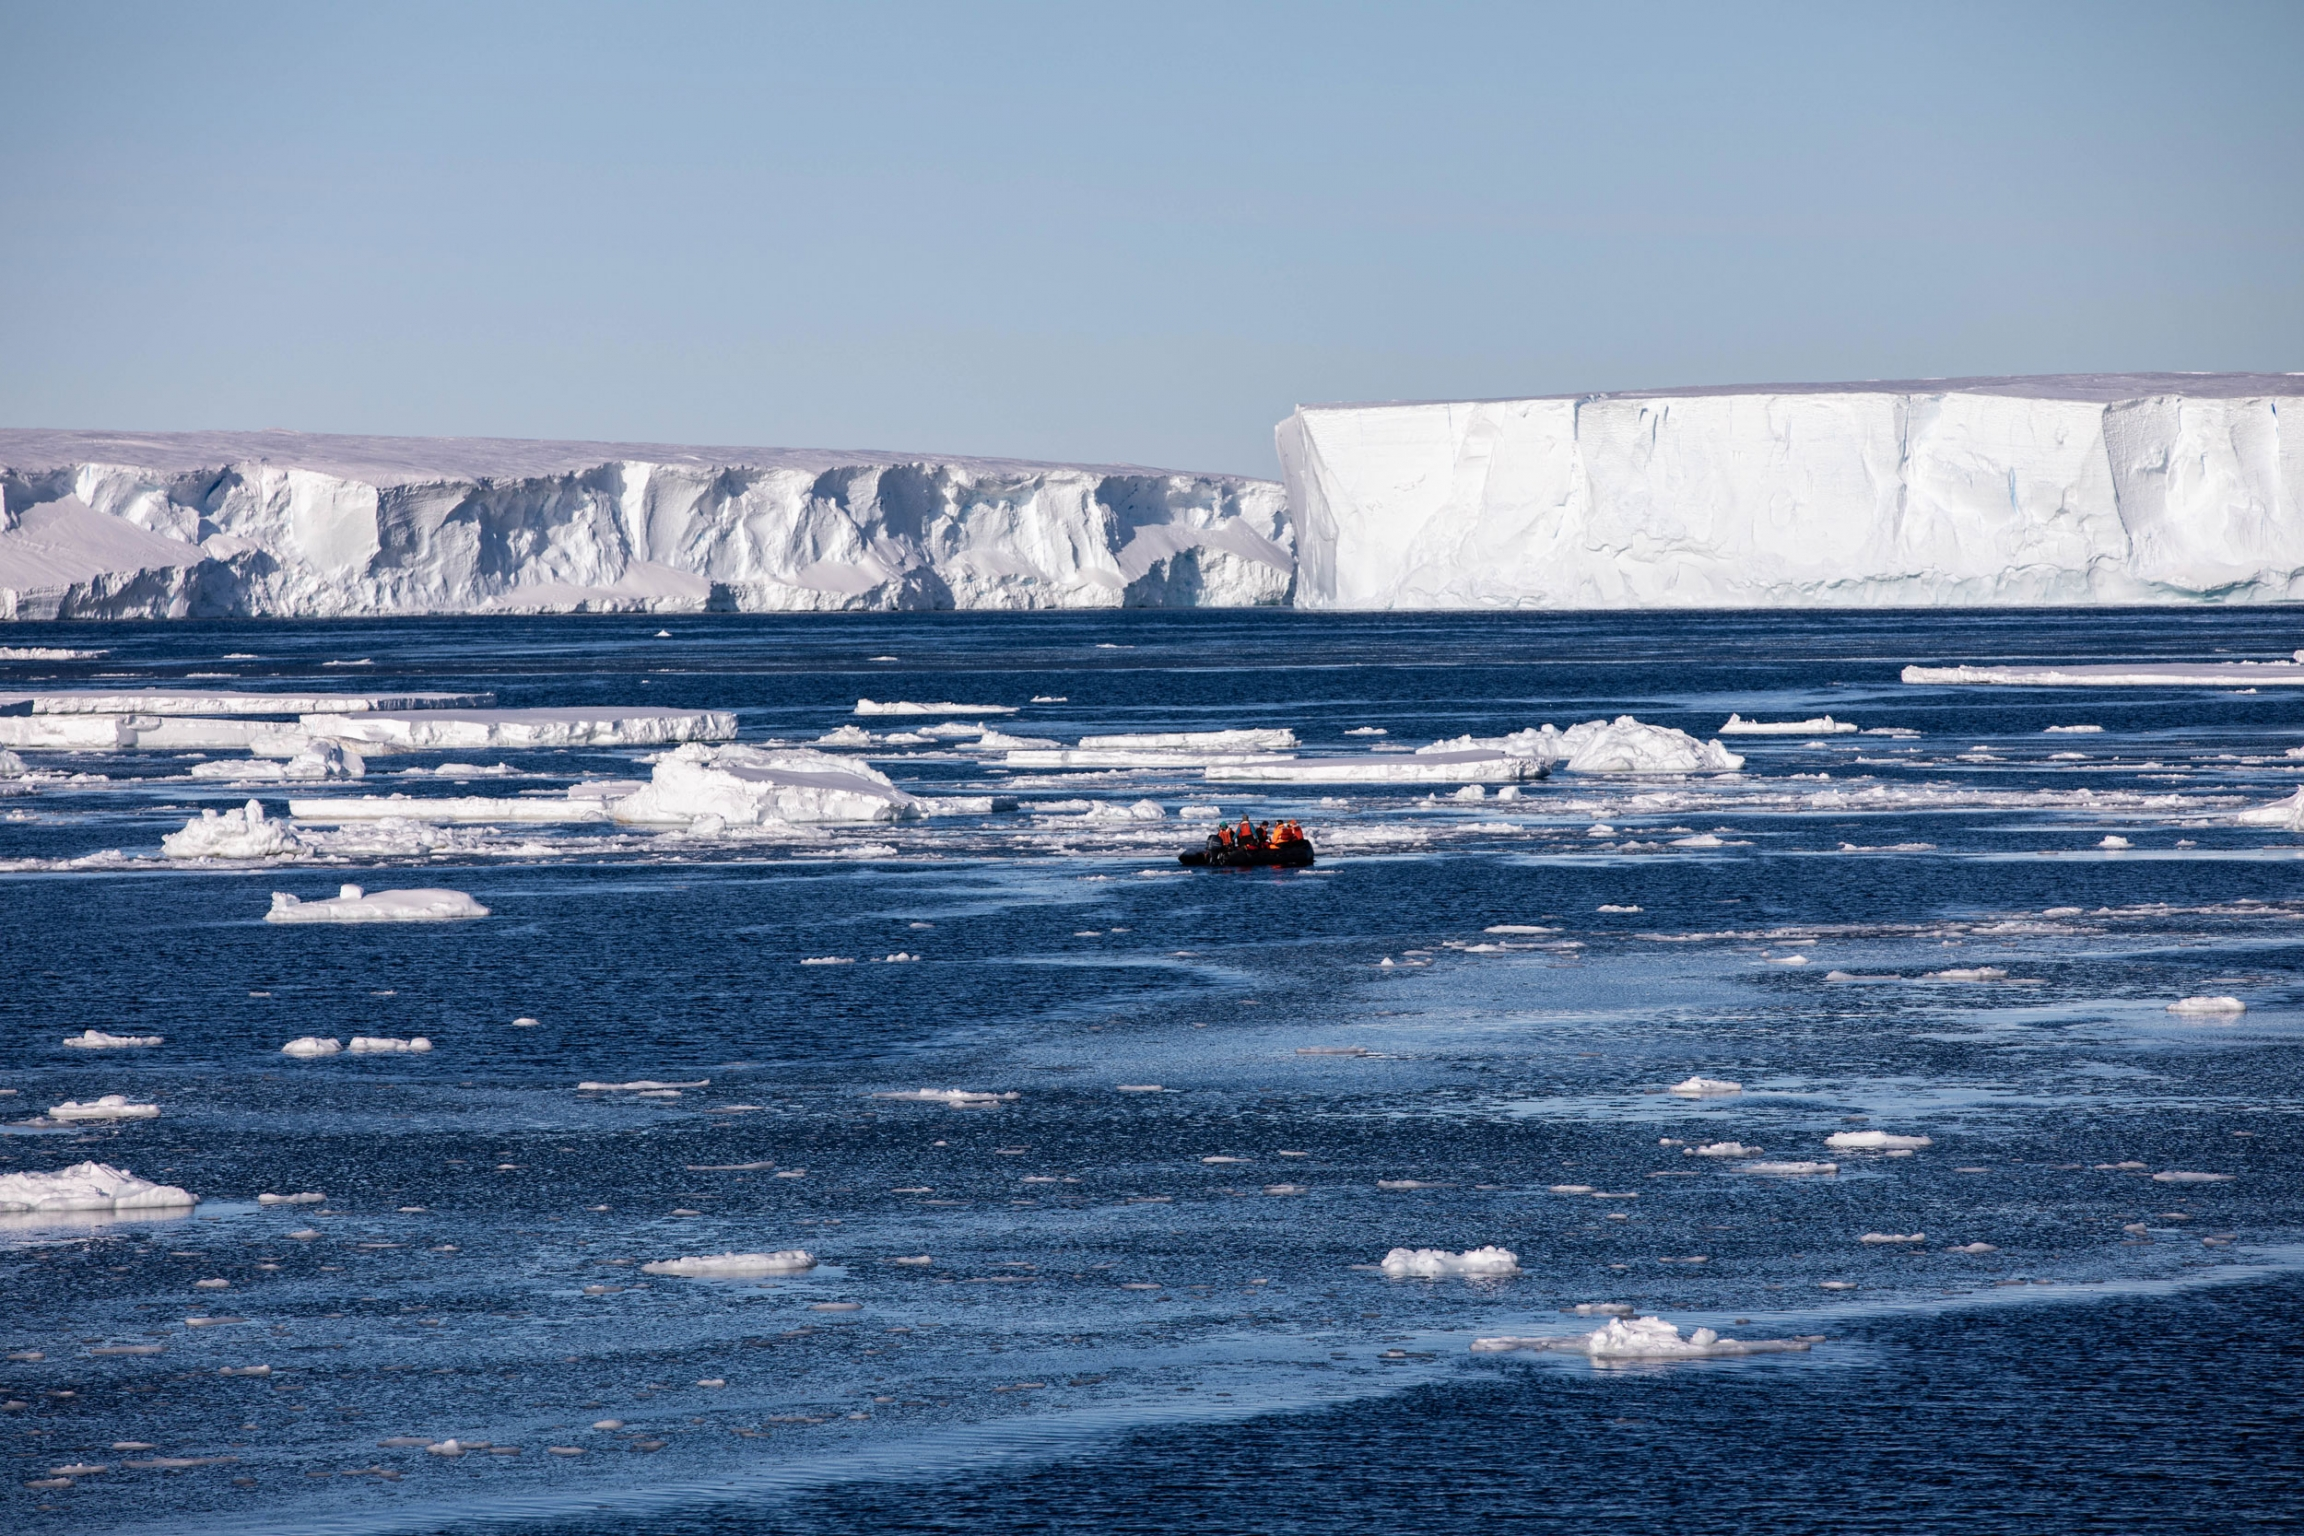 A Zodiac boat is shown off in the distance with several people aboard with large white floating ice all around.